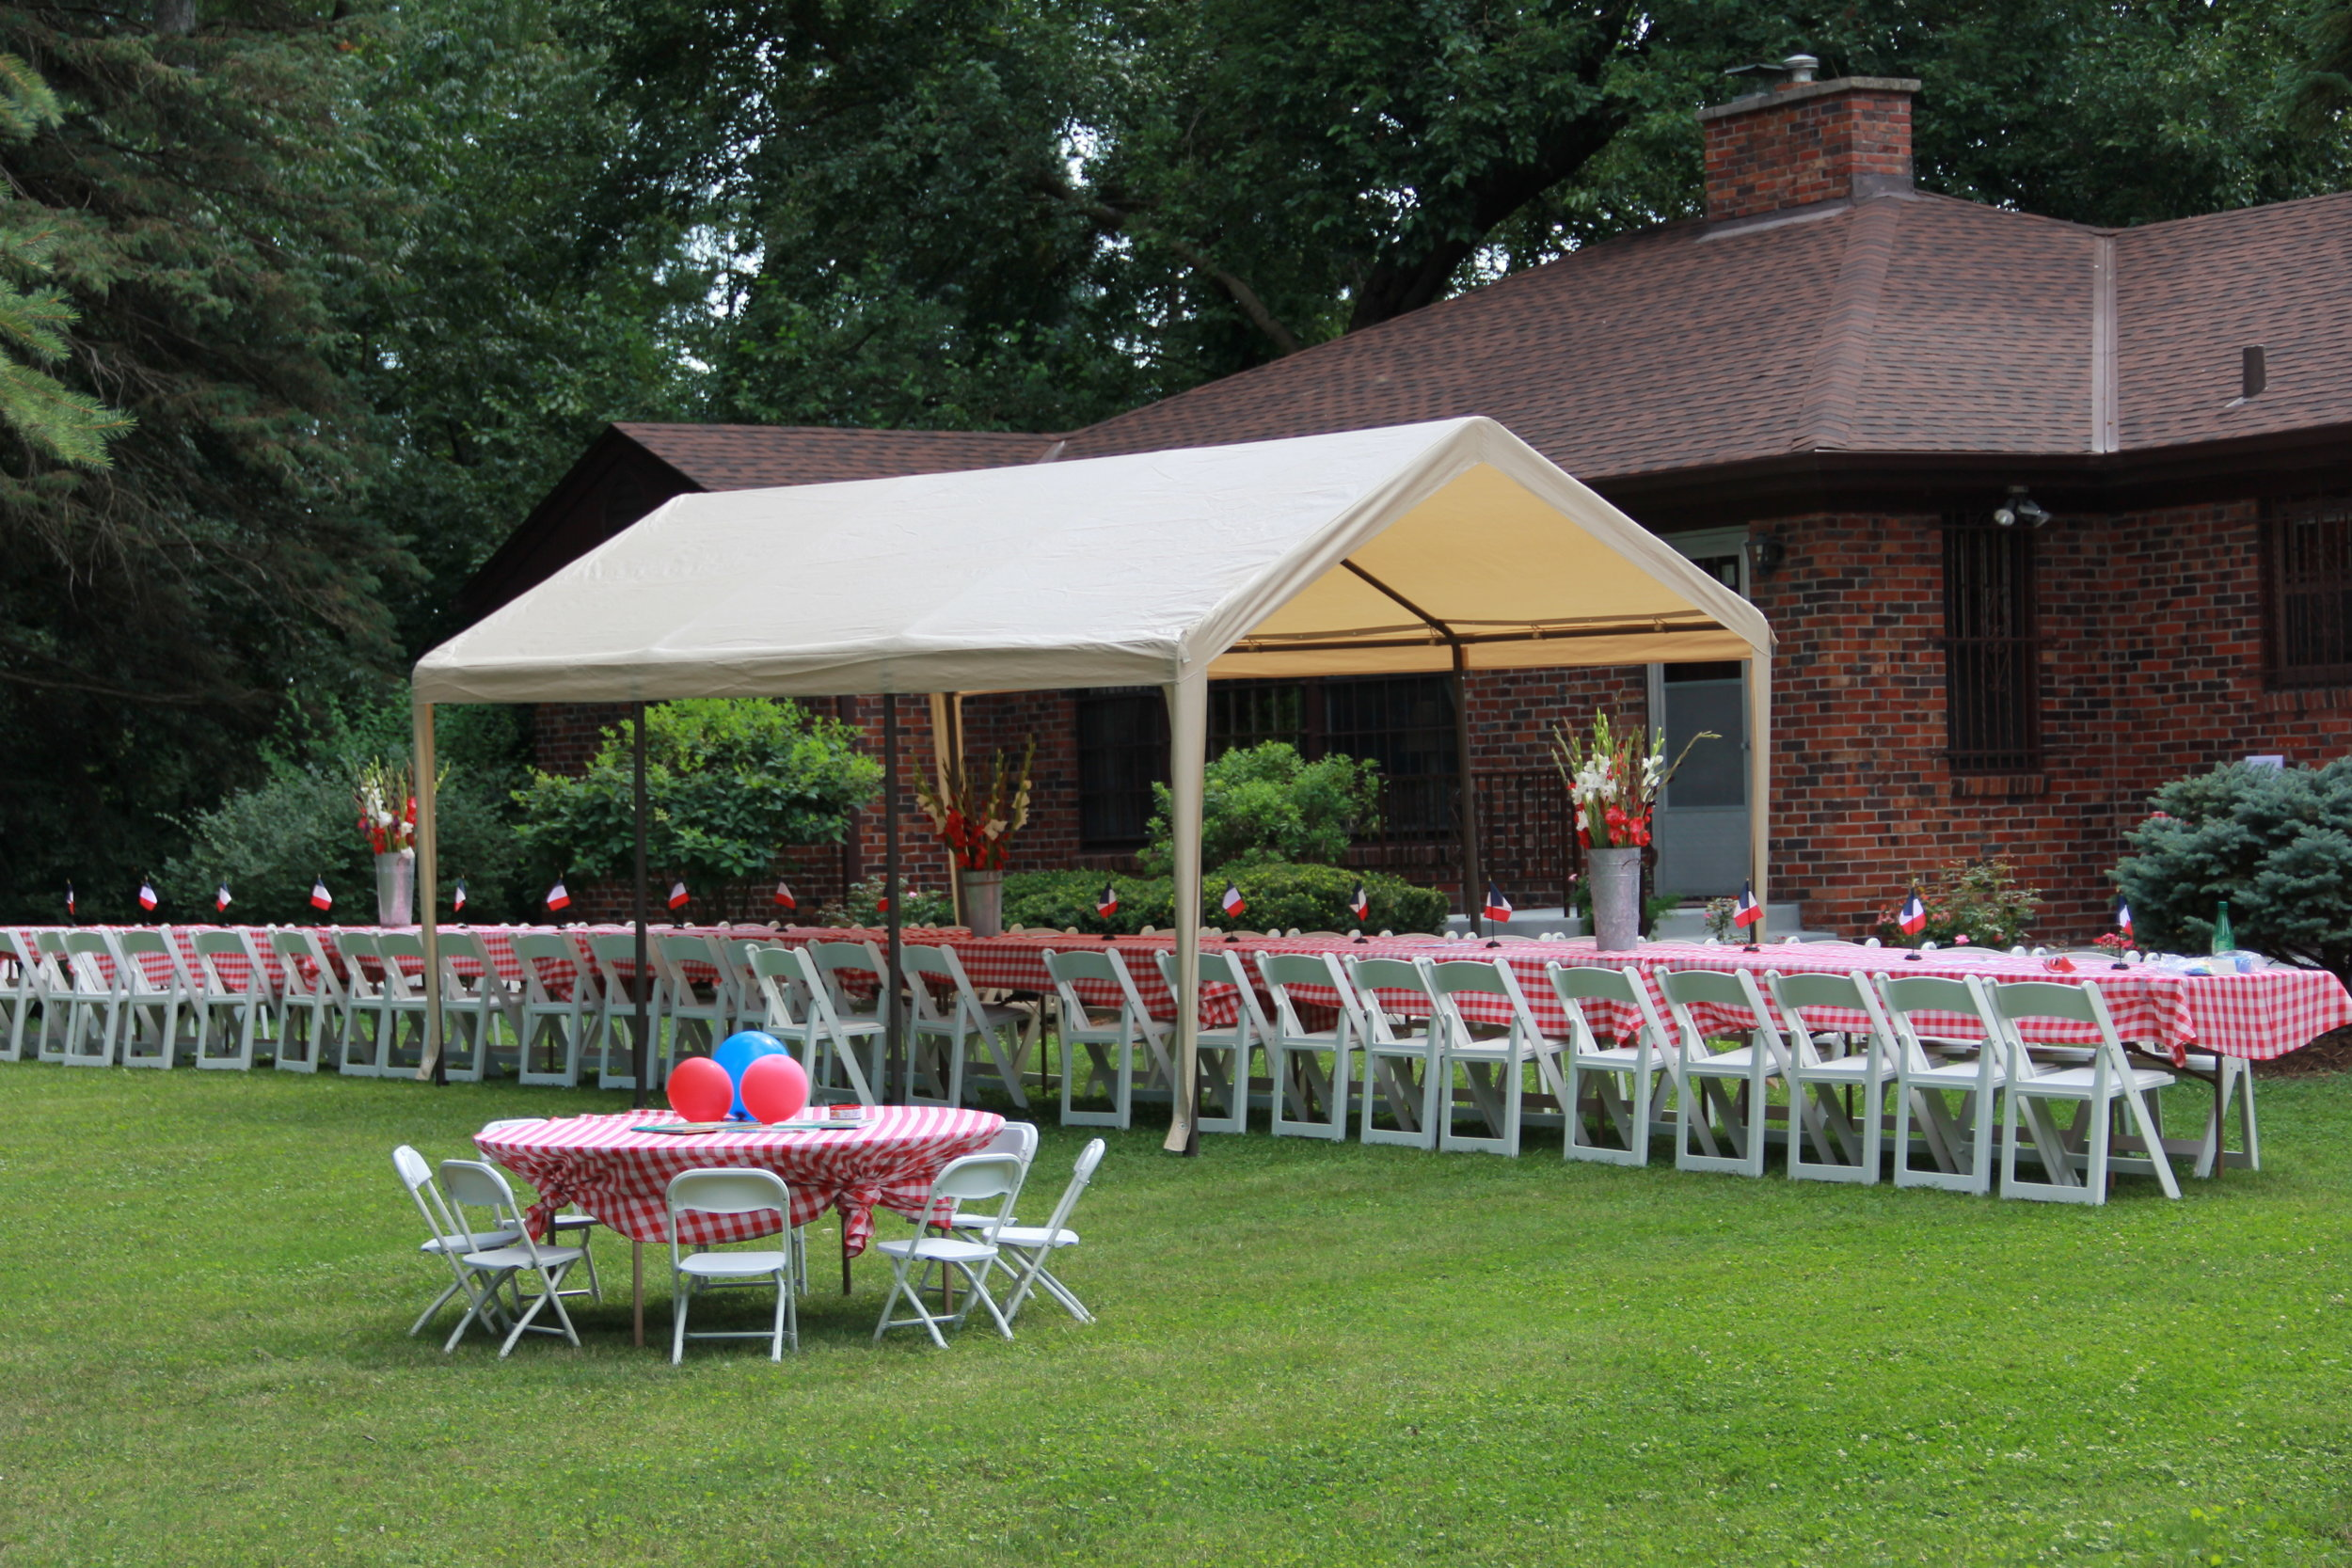 Our lovely venue for the day's fête.